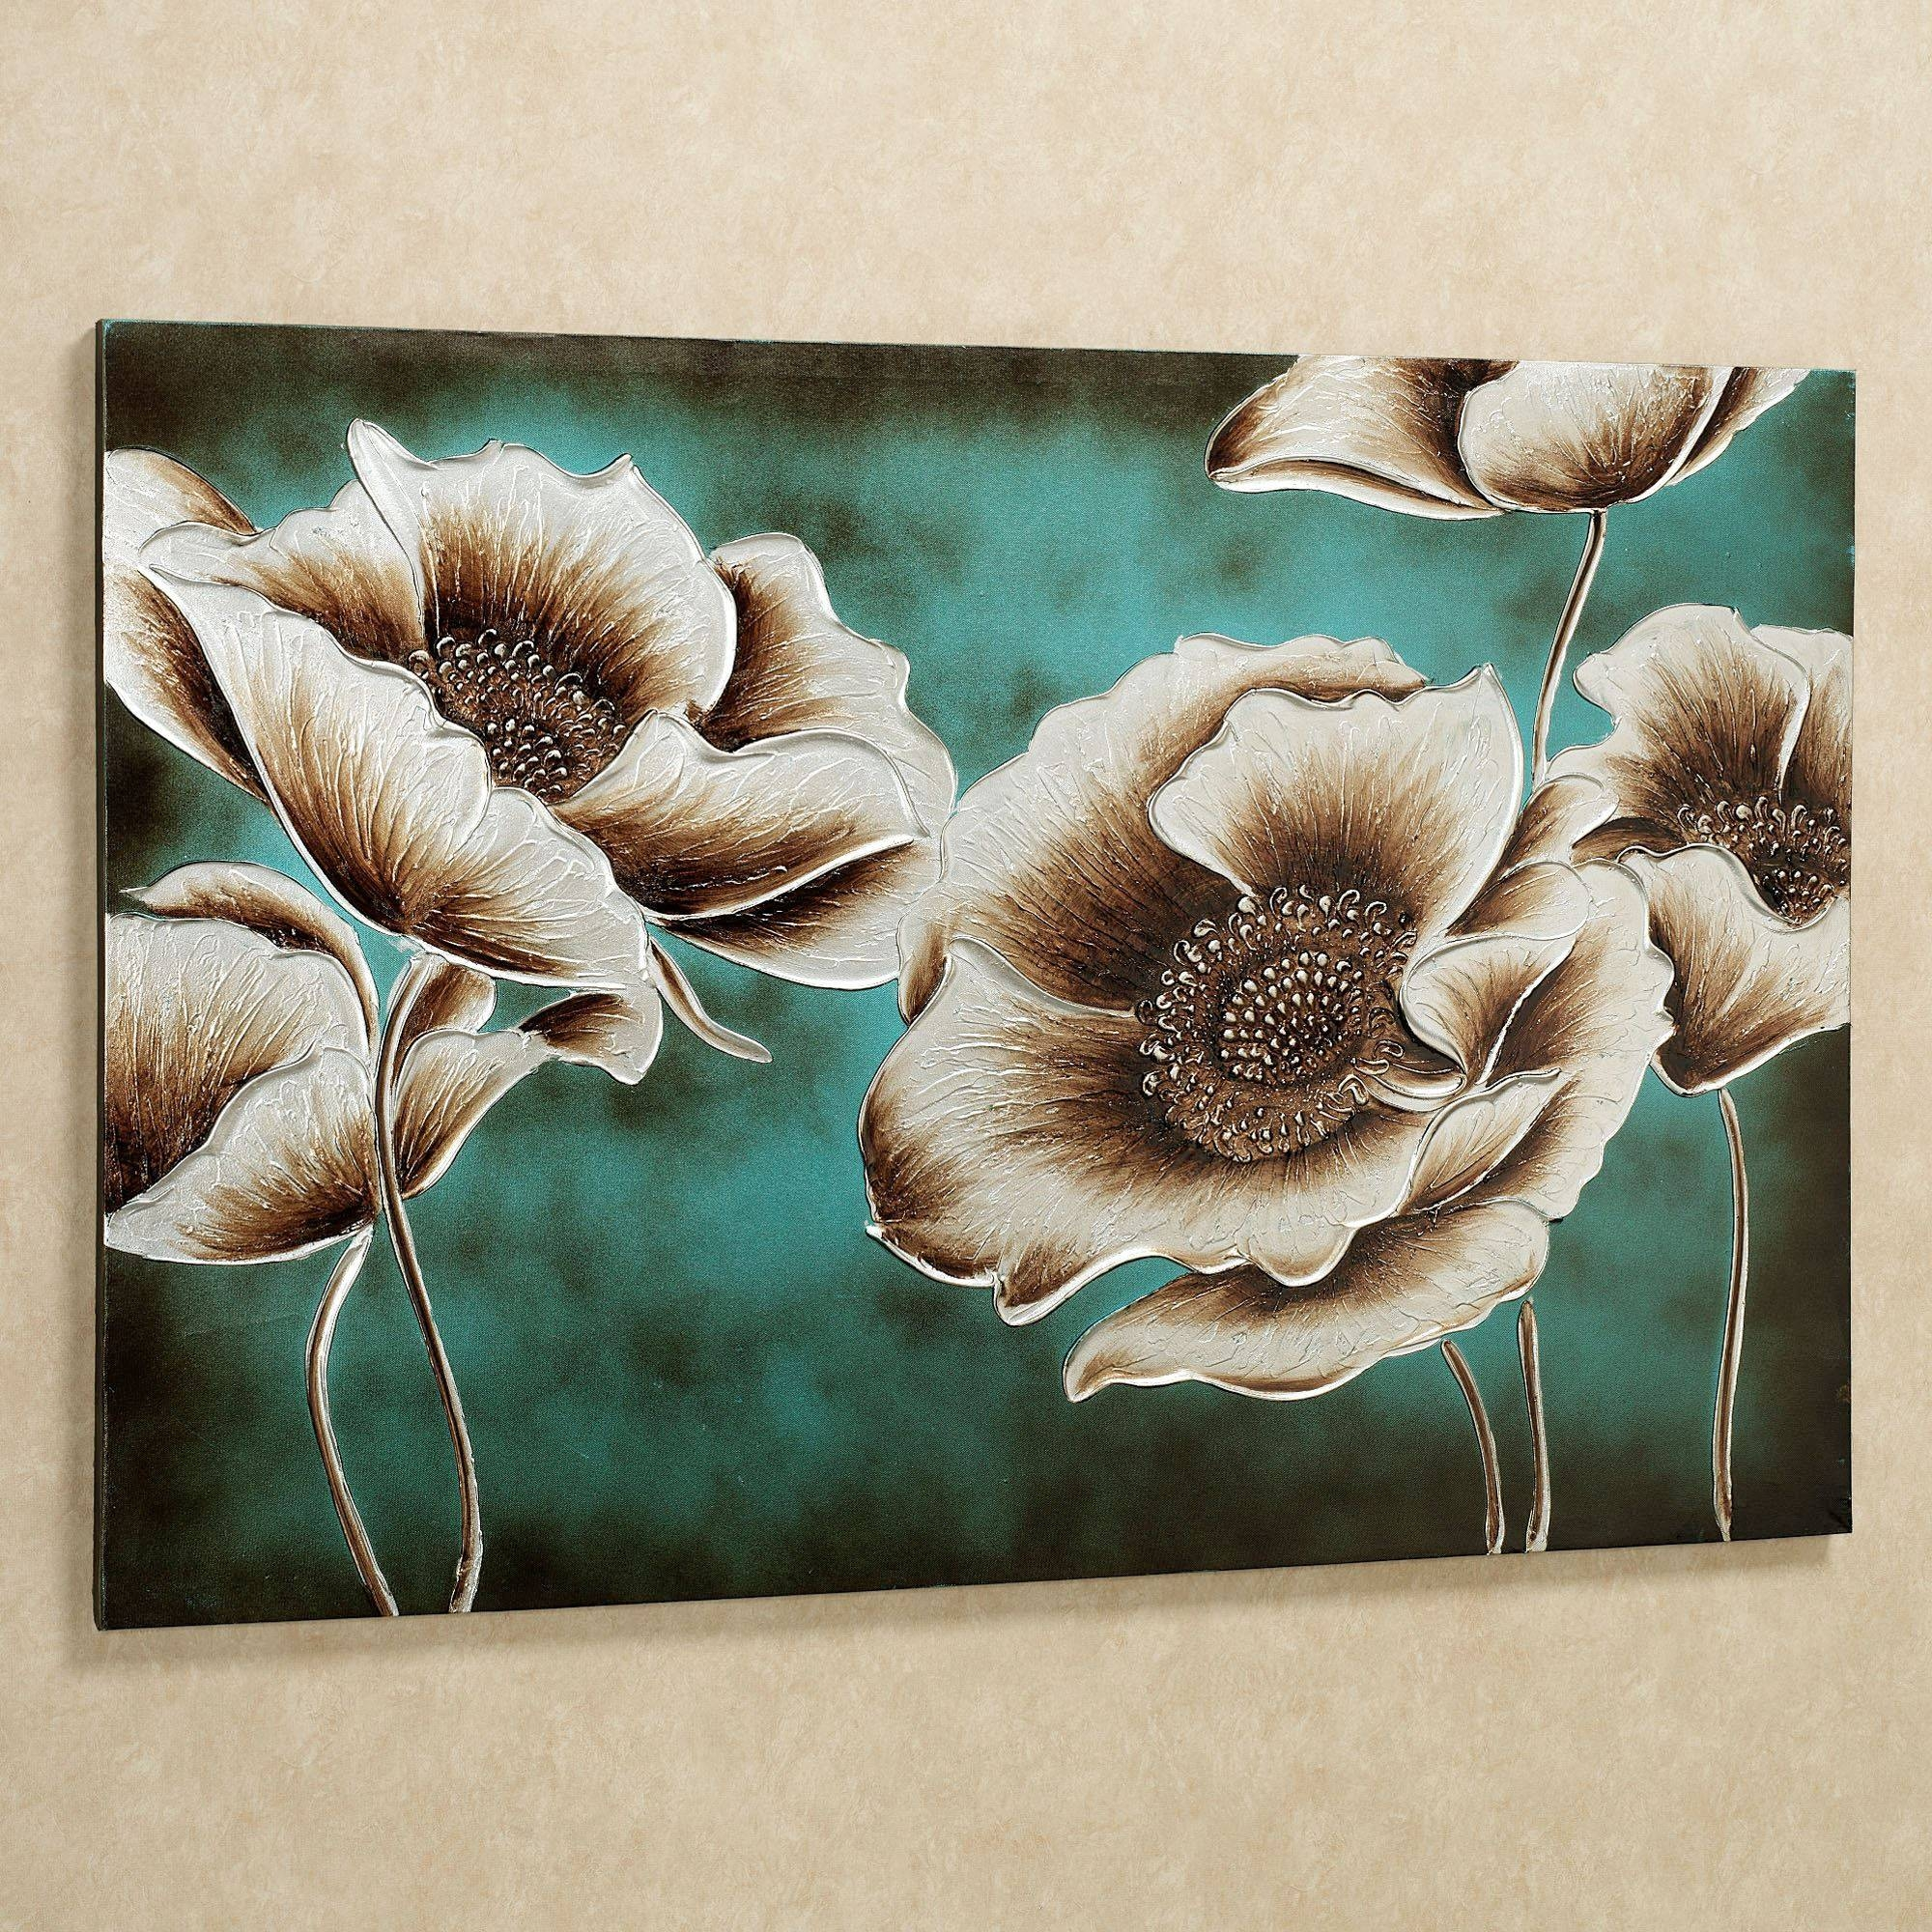 Cool Design Ideas Piece Canvas Wall Artblack Teal Flower Canvas Pertaining To Most Current Teal Flower Canvas Wall Art (View 2 of 20)